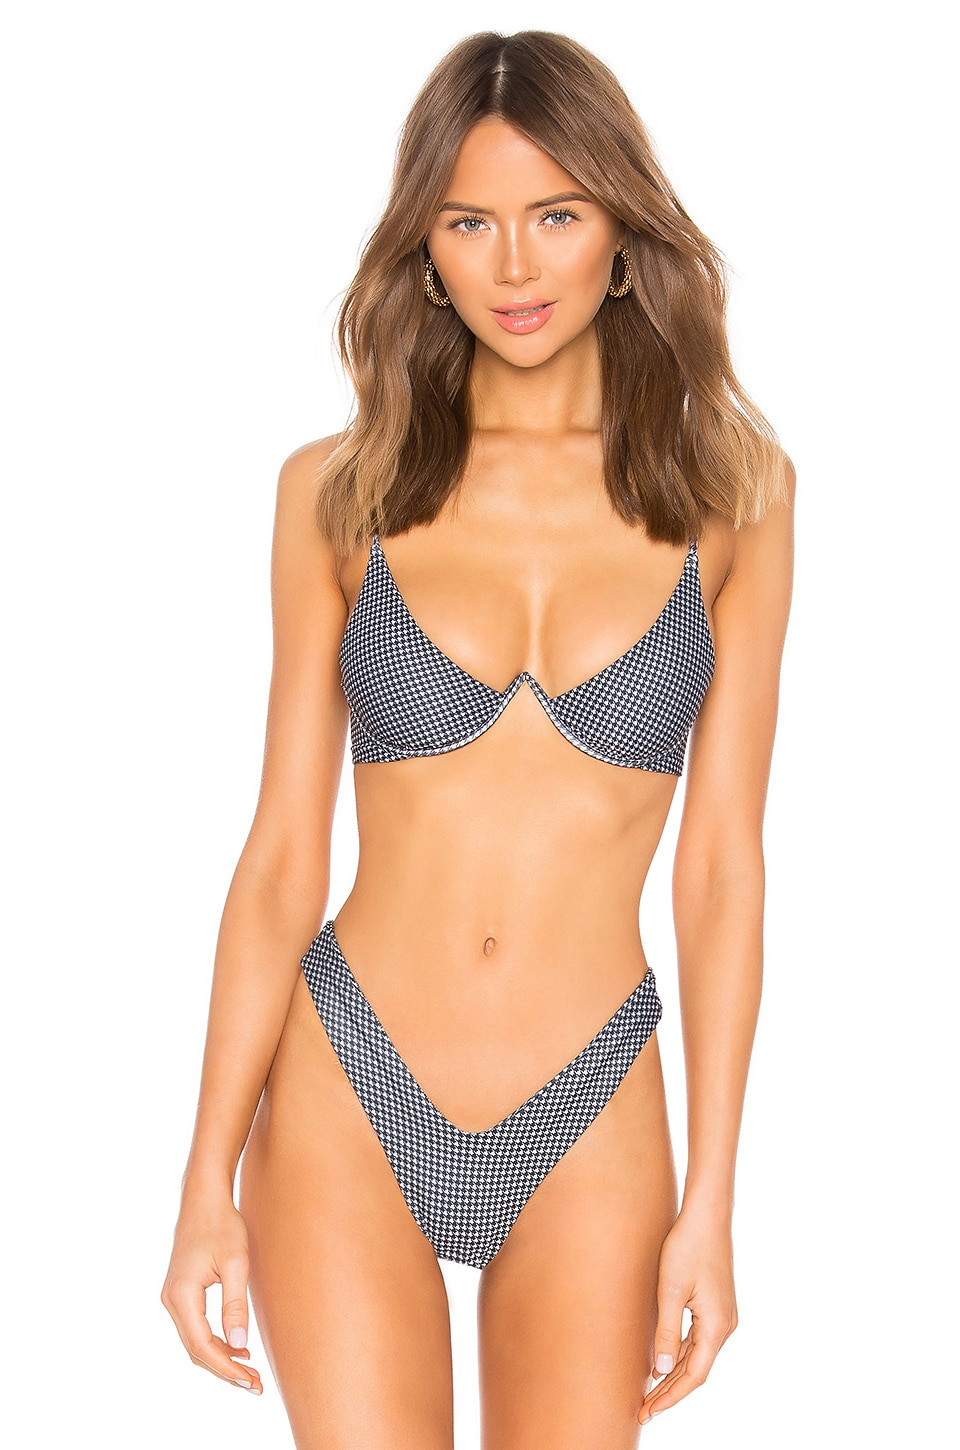 KAOHS Mia Bikini Top in Hounds